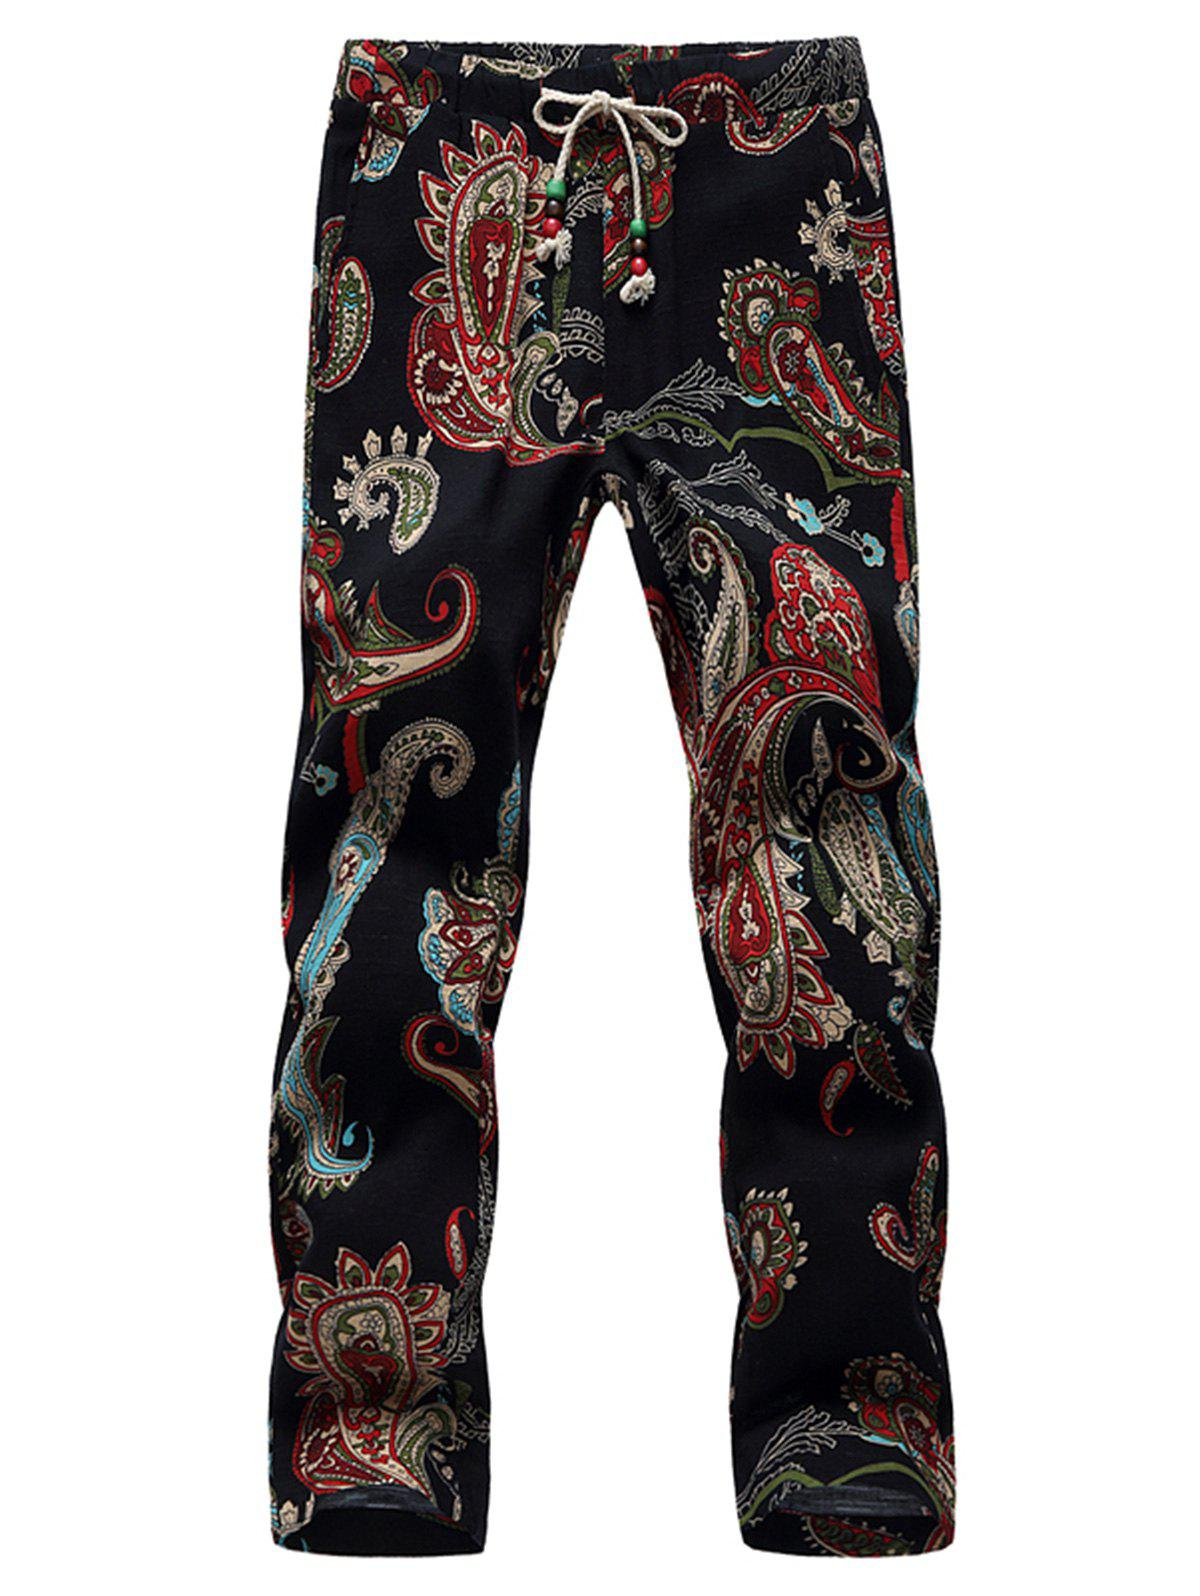 Buy Lace Up Cotton Linen Printed Ninth Pants